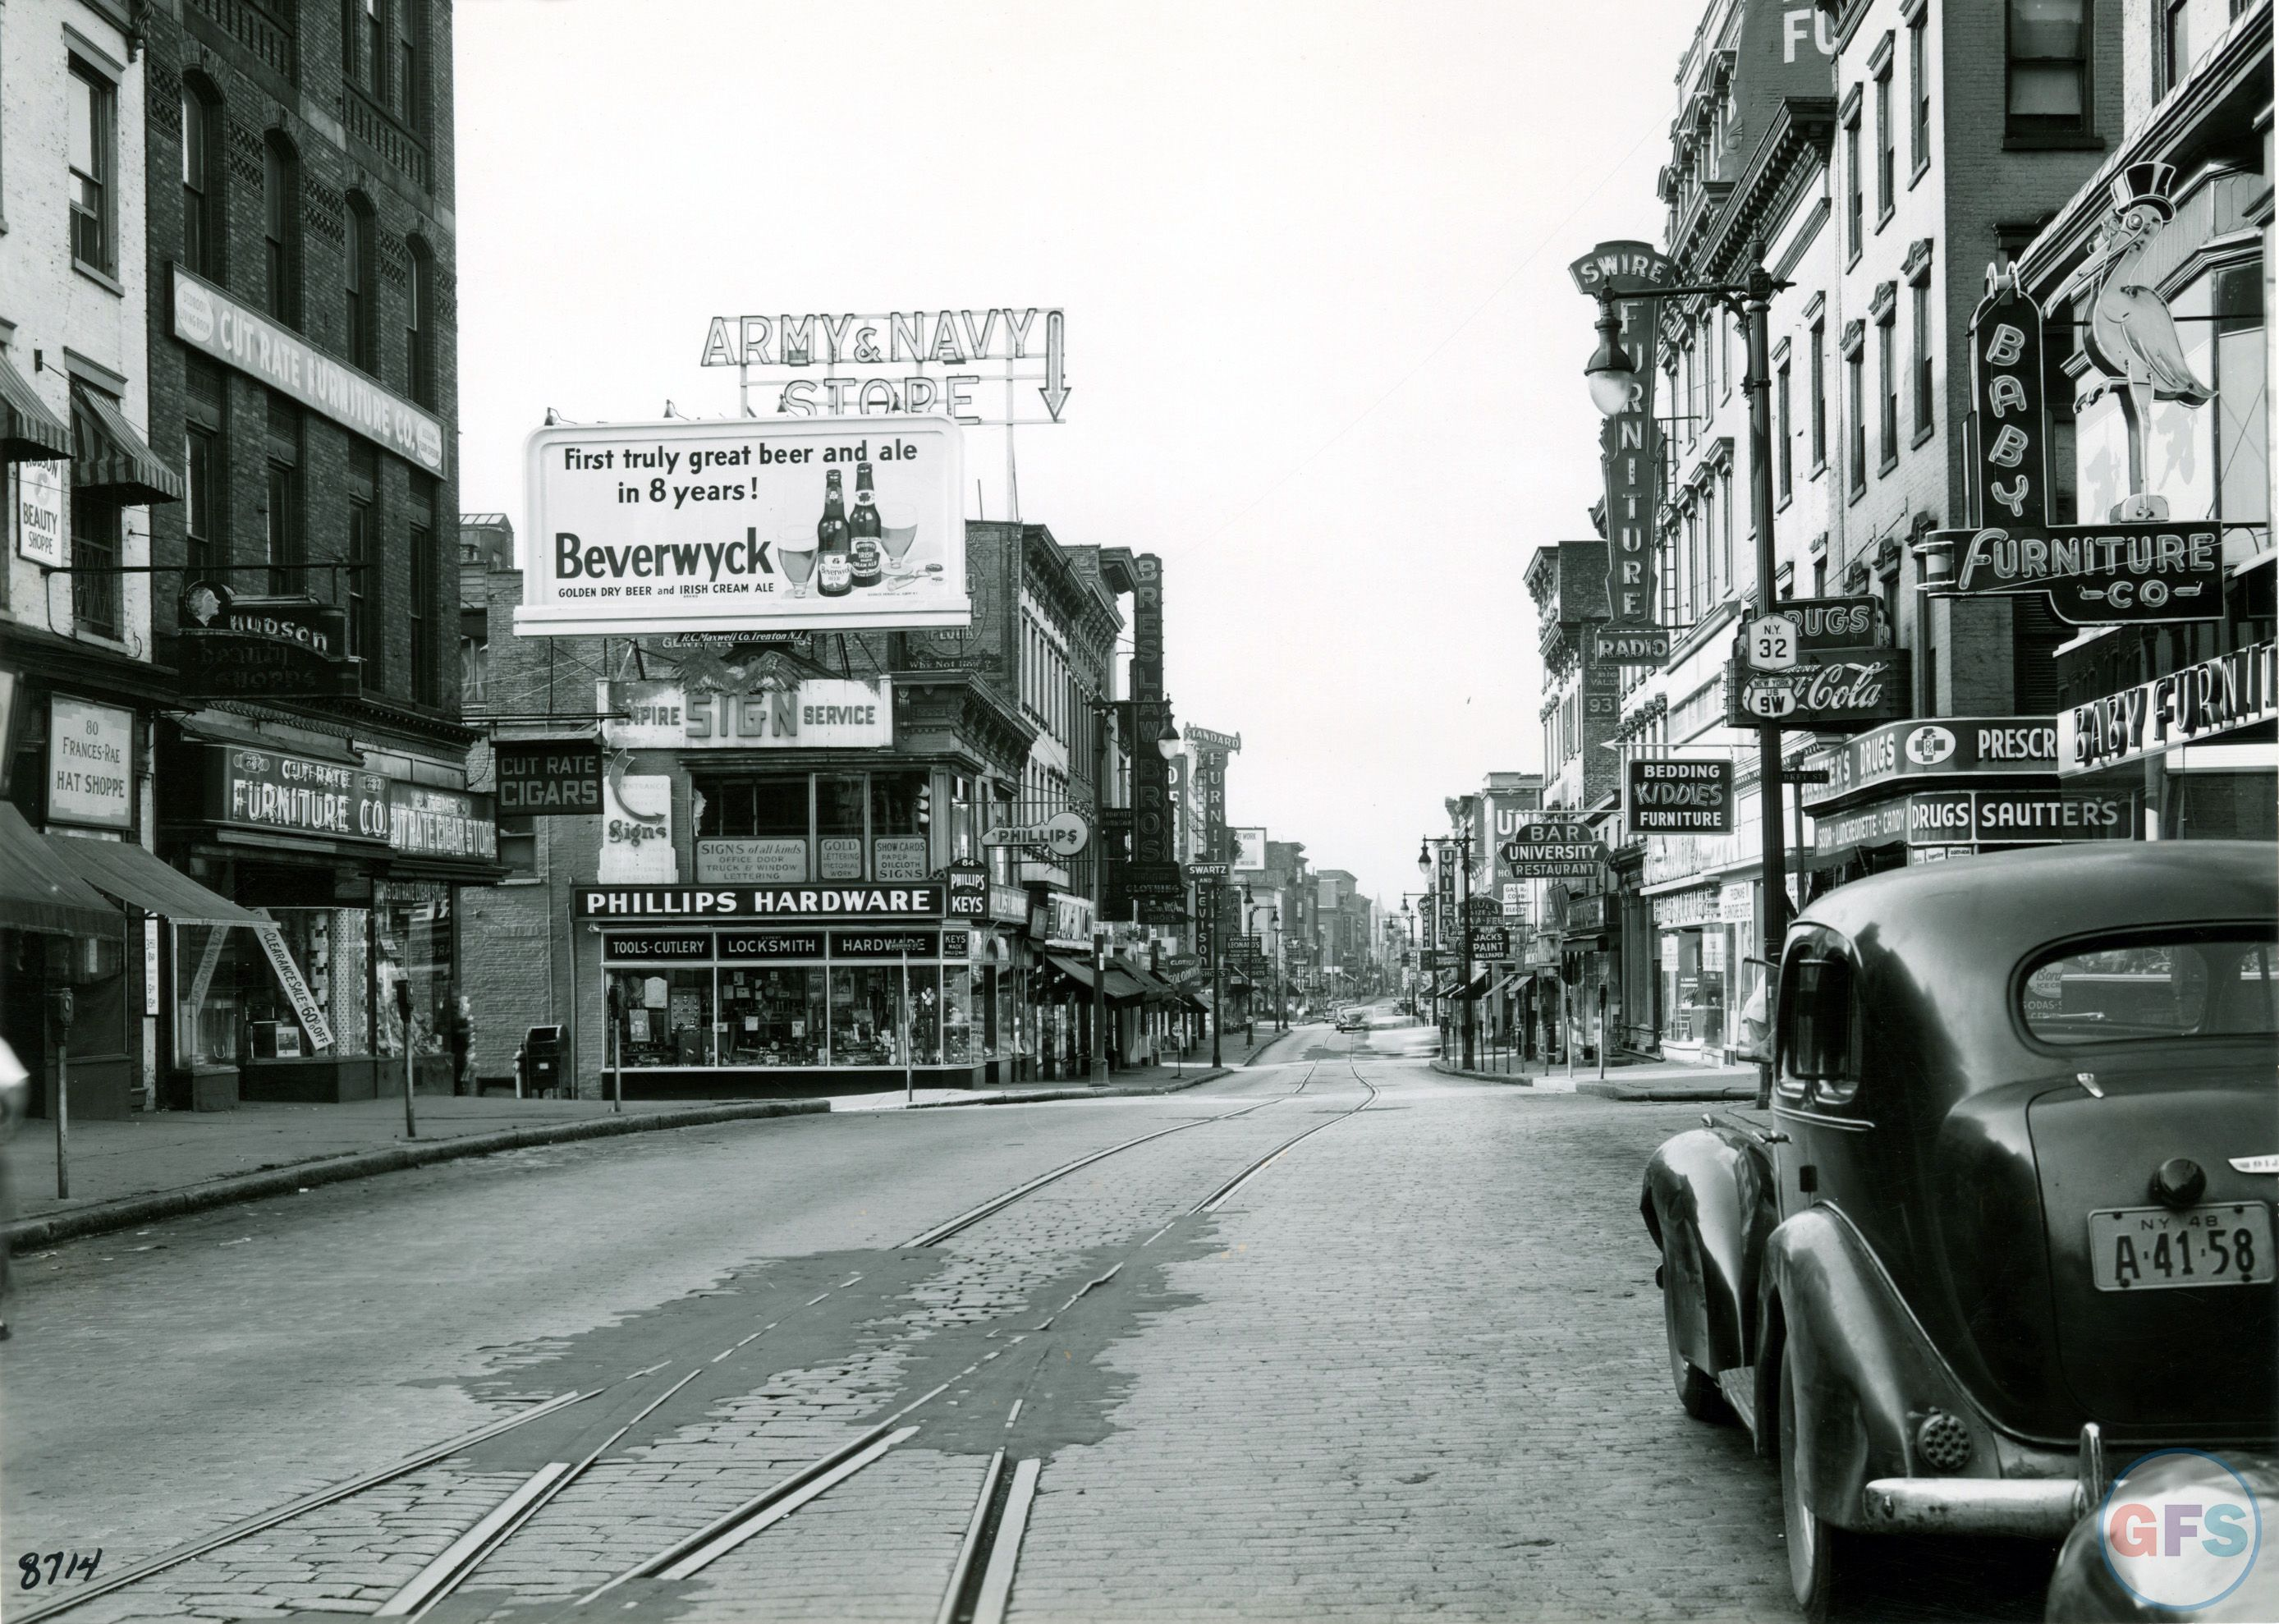 Vintage Photo Of Albany From The Late 1940s Grayflannelsuit Net Albany New York Places To Visit Albany